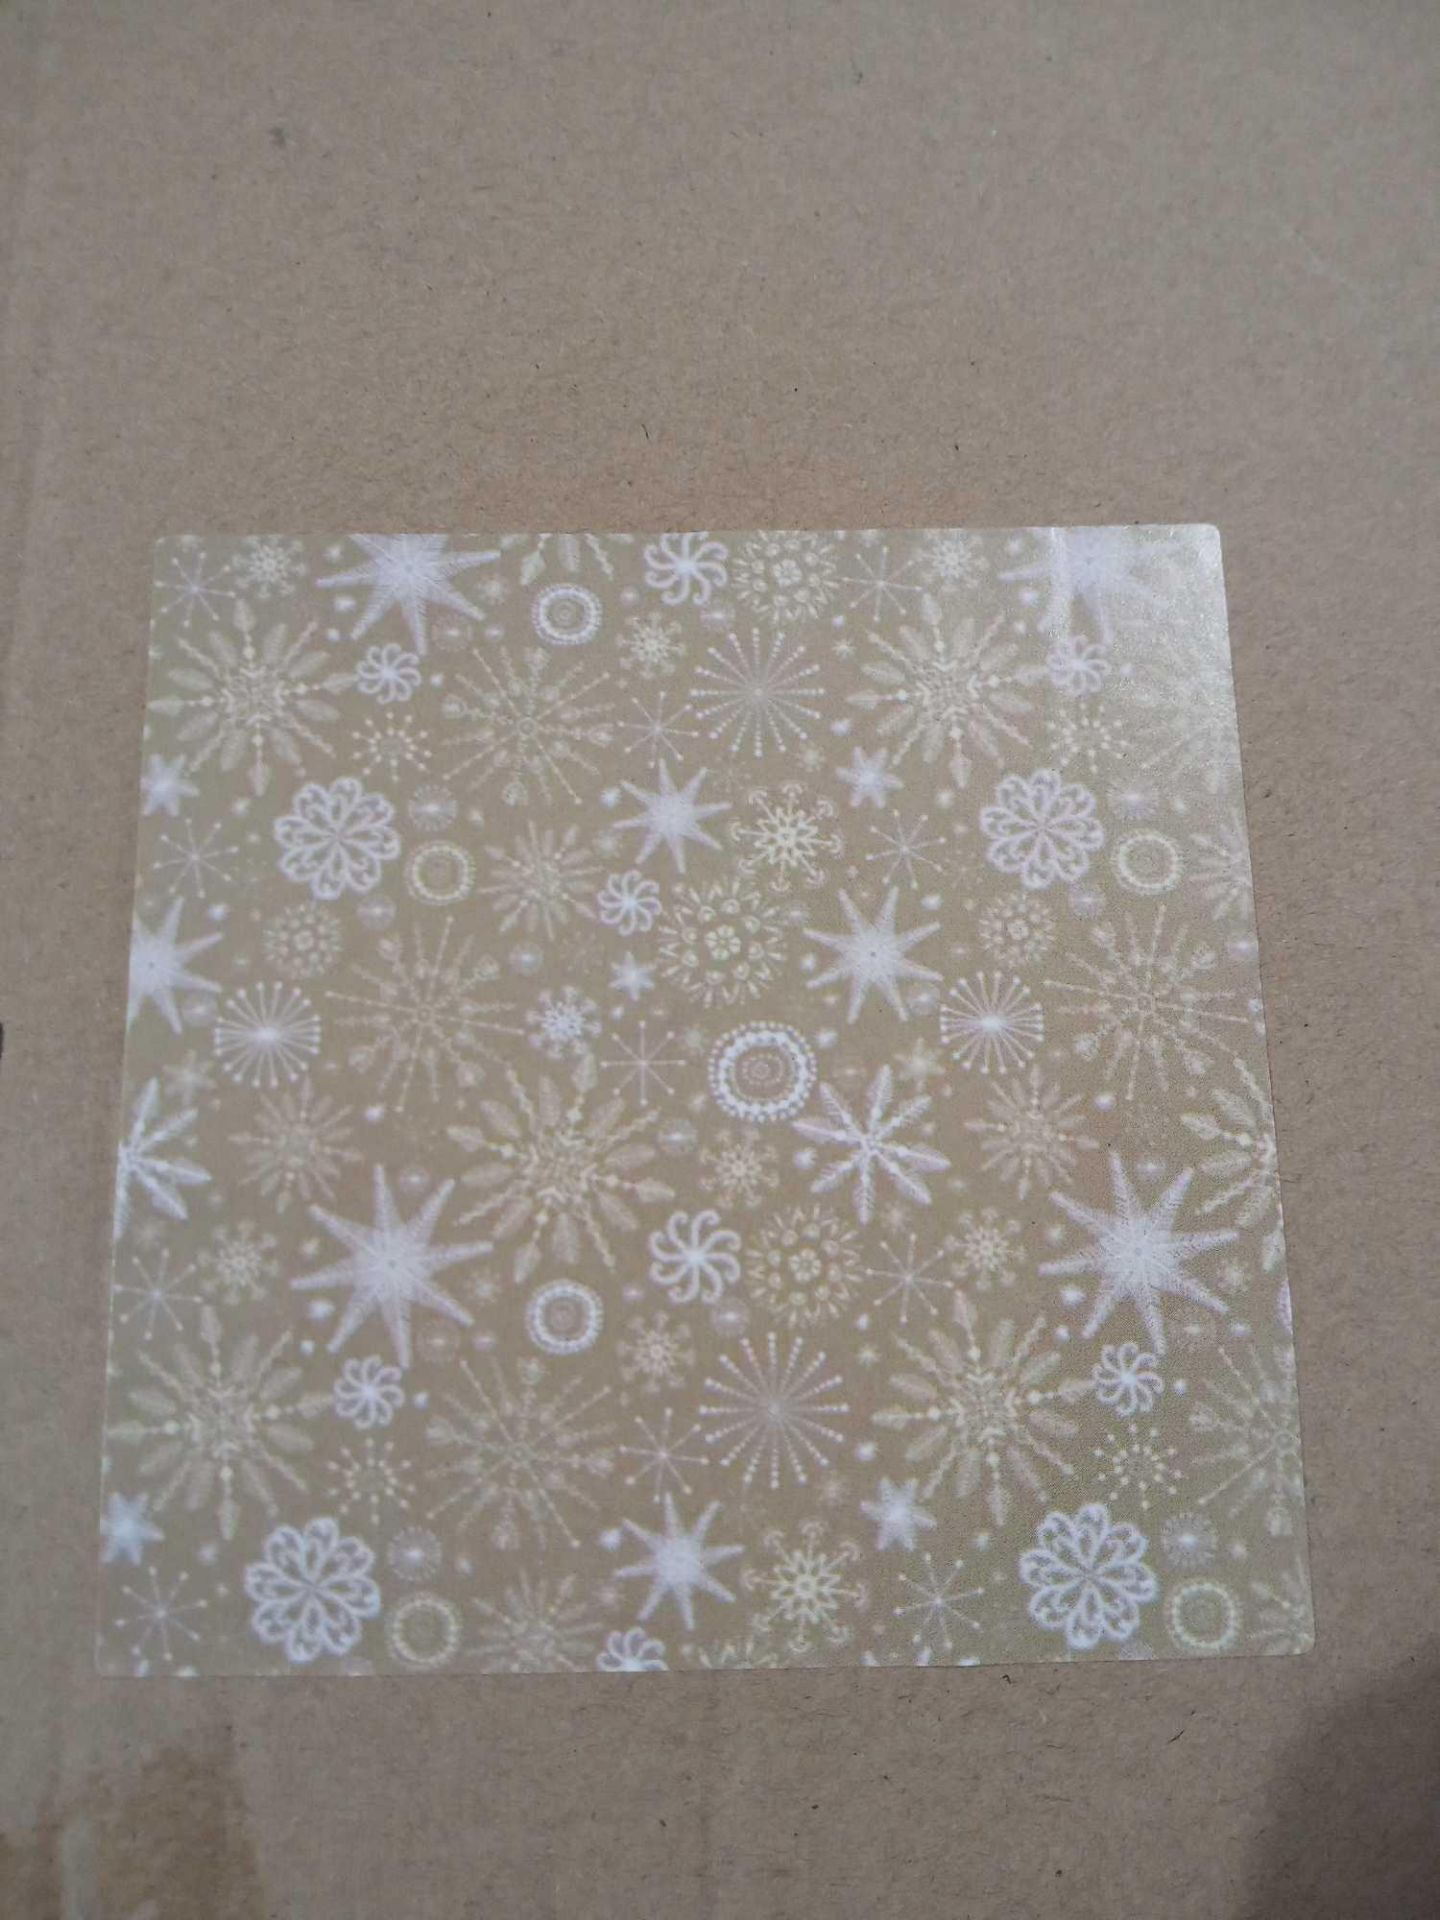 RRP £36 Box To Contain 36 Rolls Of Snow Flake Gold Roll Wrap